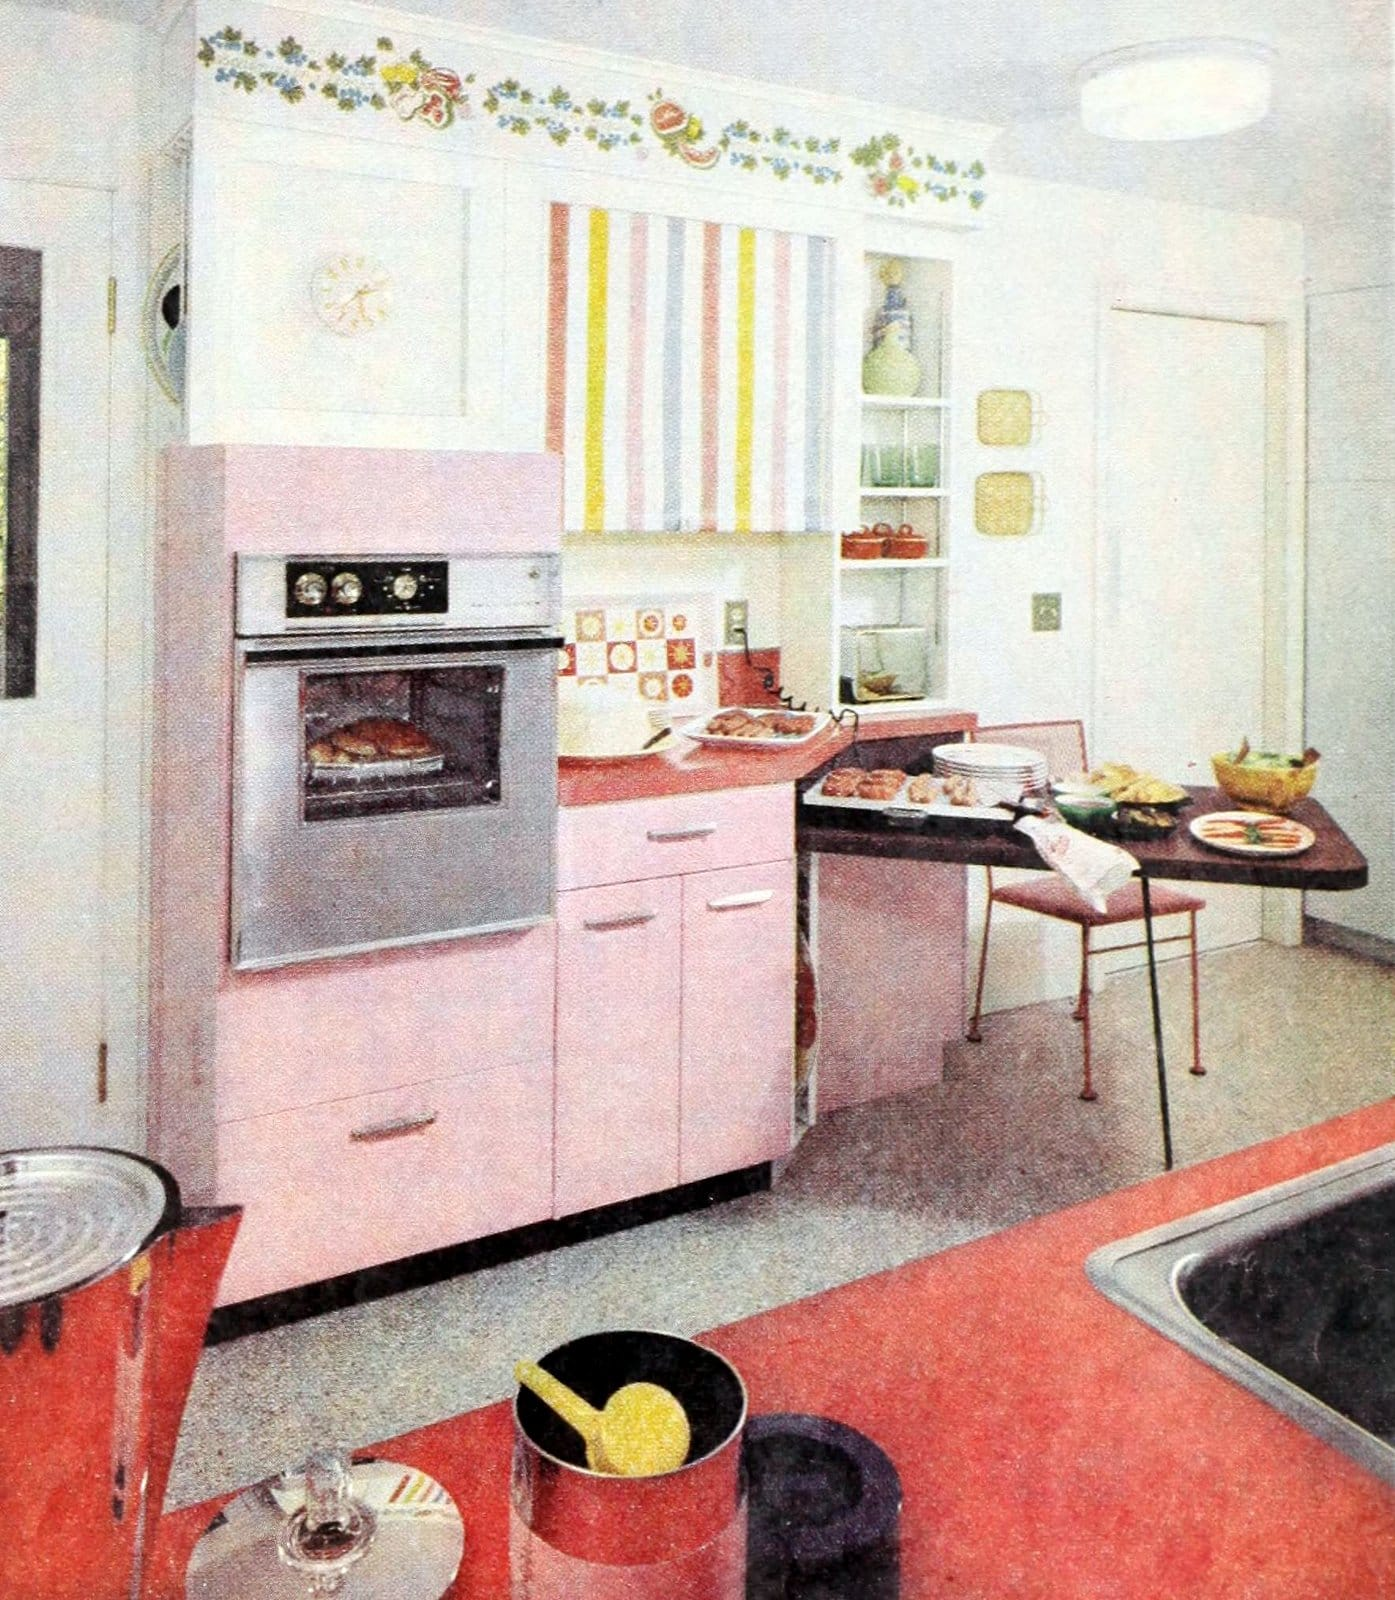 Old-fashioned fifties kitchen with pink and pastel decor plus red